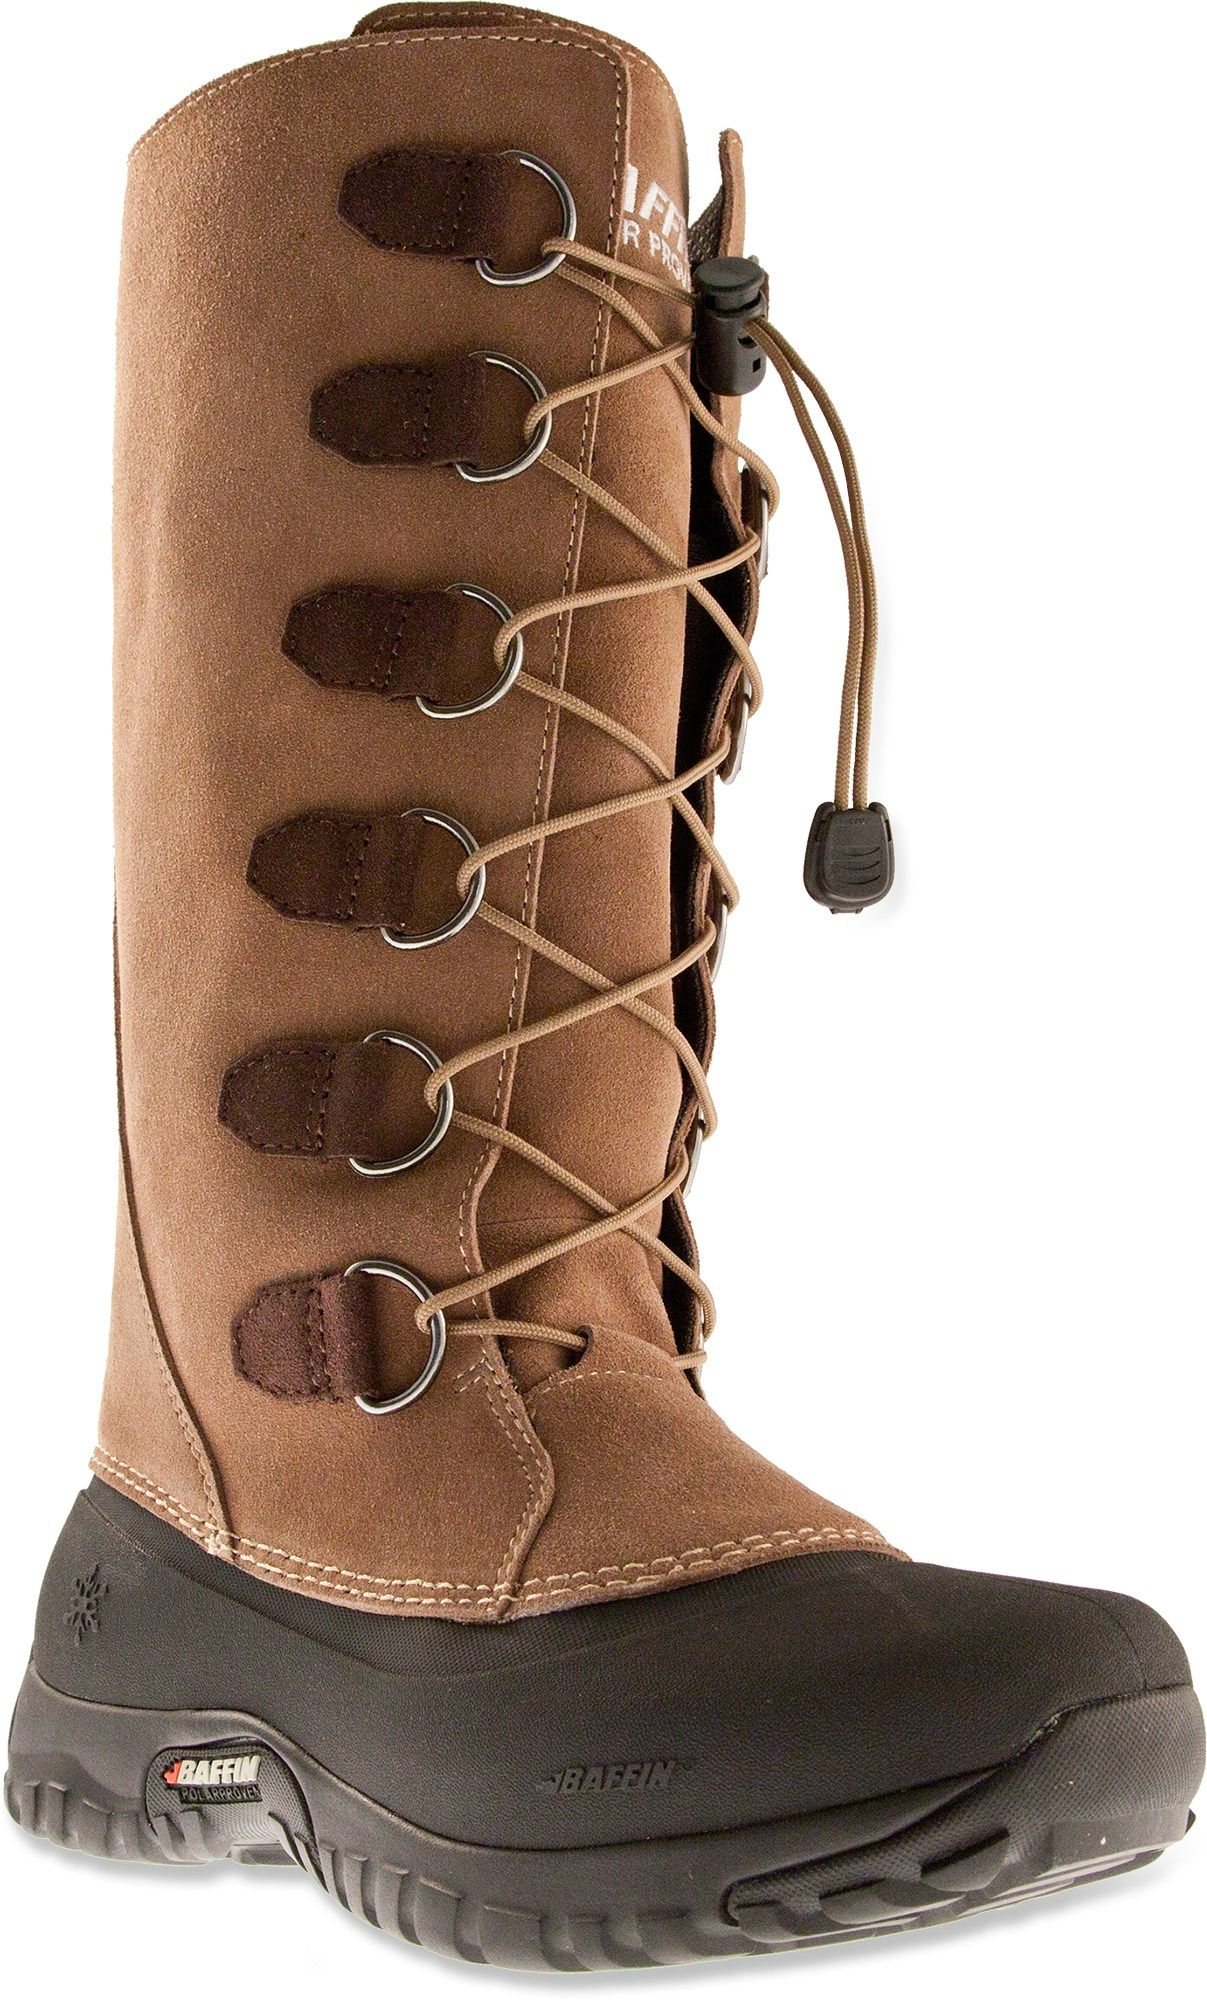 50bfde6b7af Coco Winter Boots - Women's | Winter | Winter boots, Snow boots ...